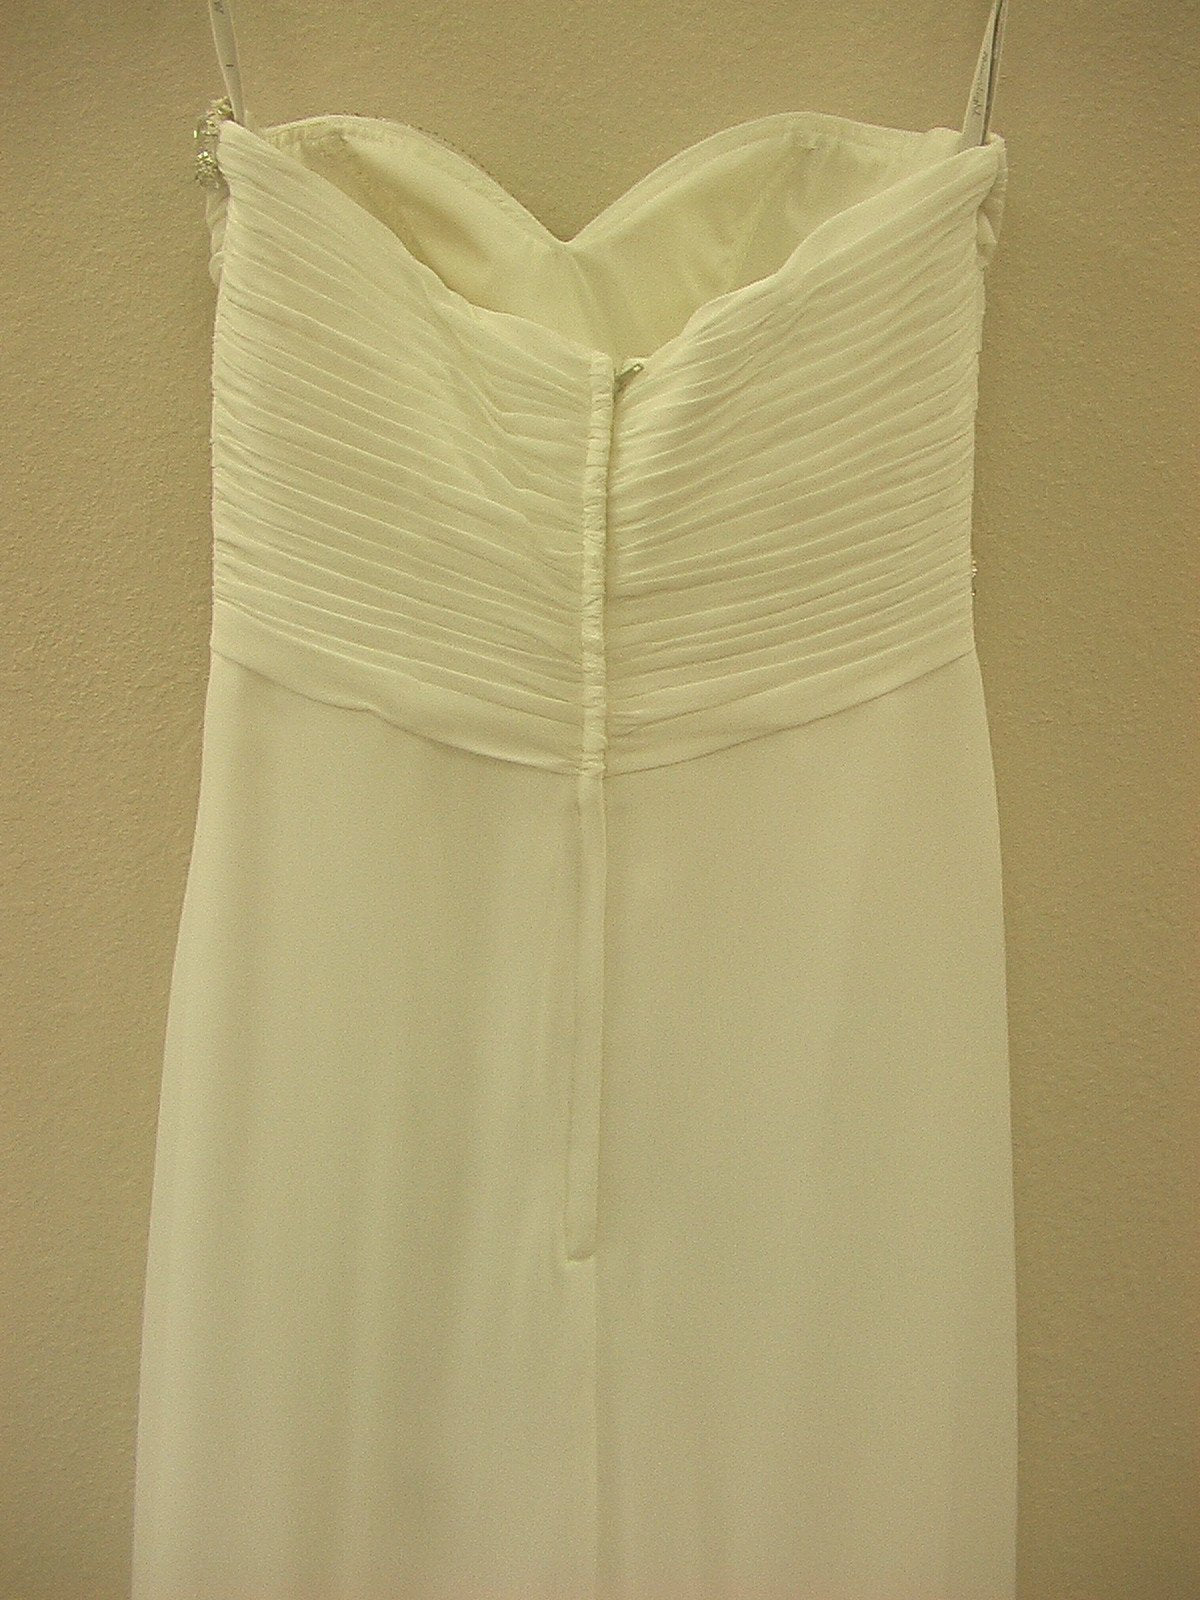 Moonlight T527 Ivory size 8 In Stock Wedding Dress - Tom's Bridal